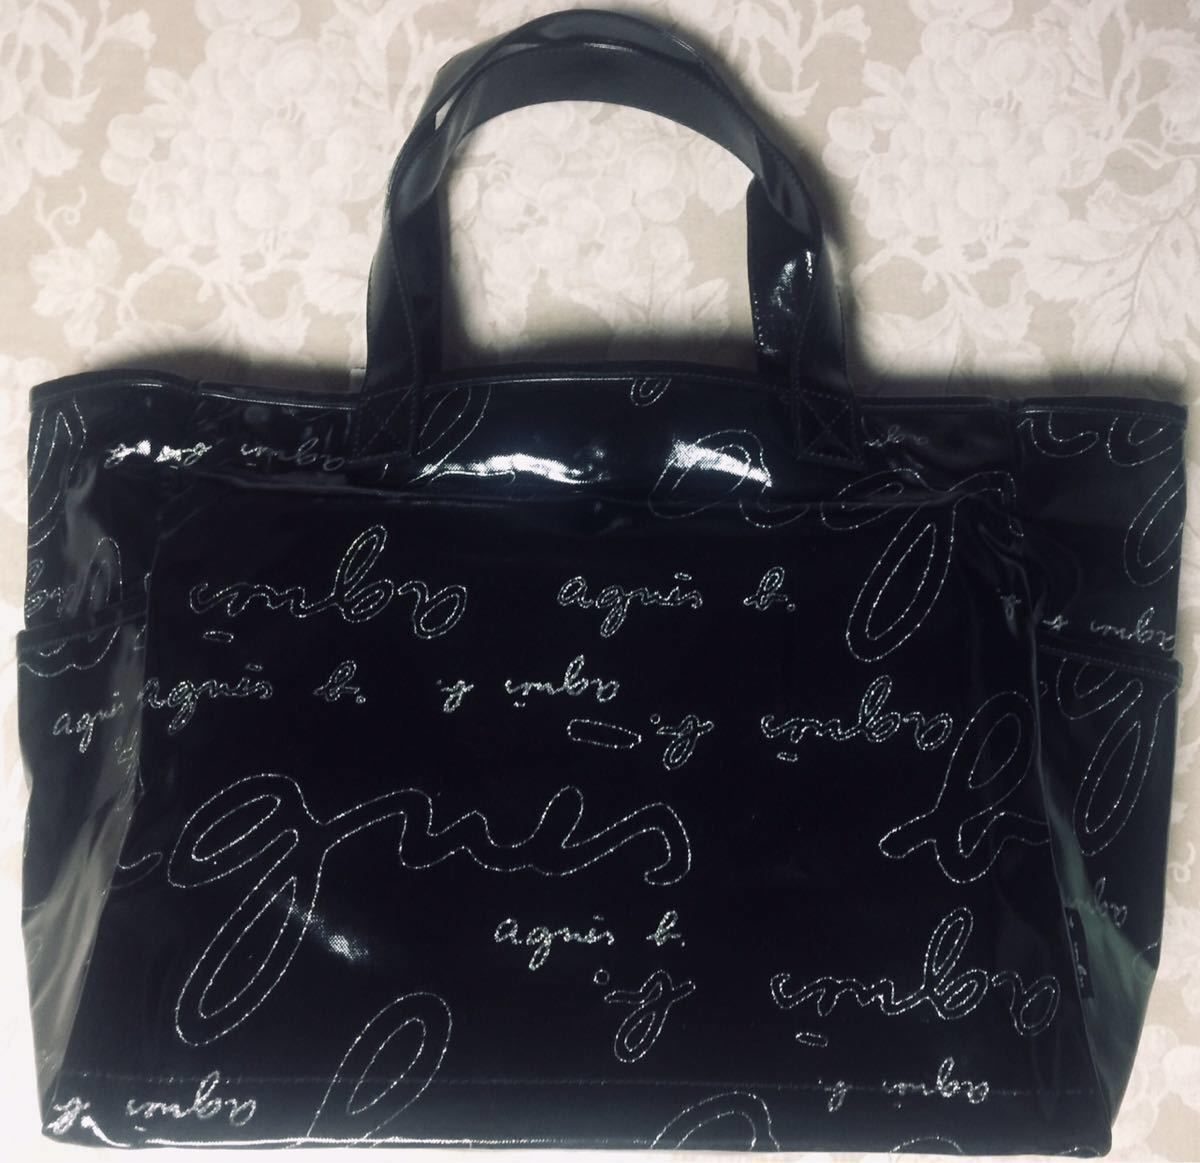 Agnes b tote bag (black)